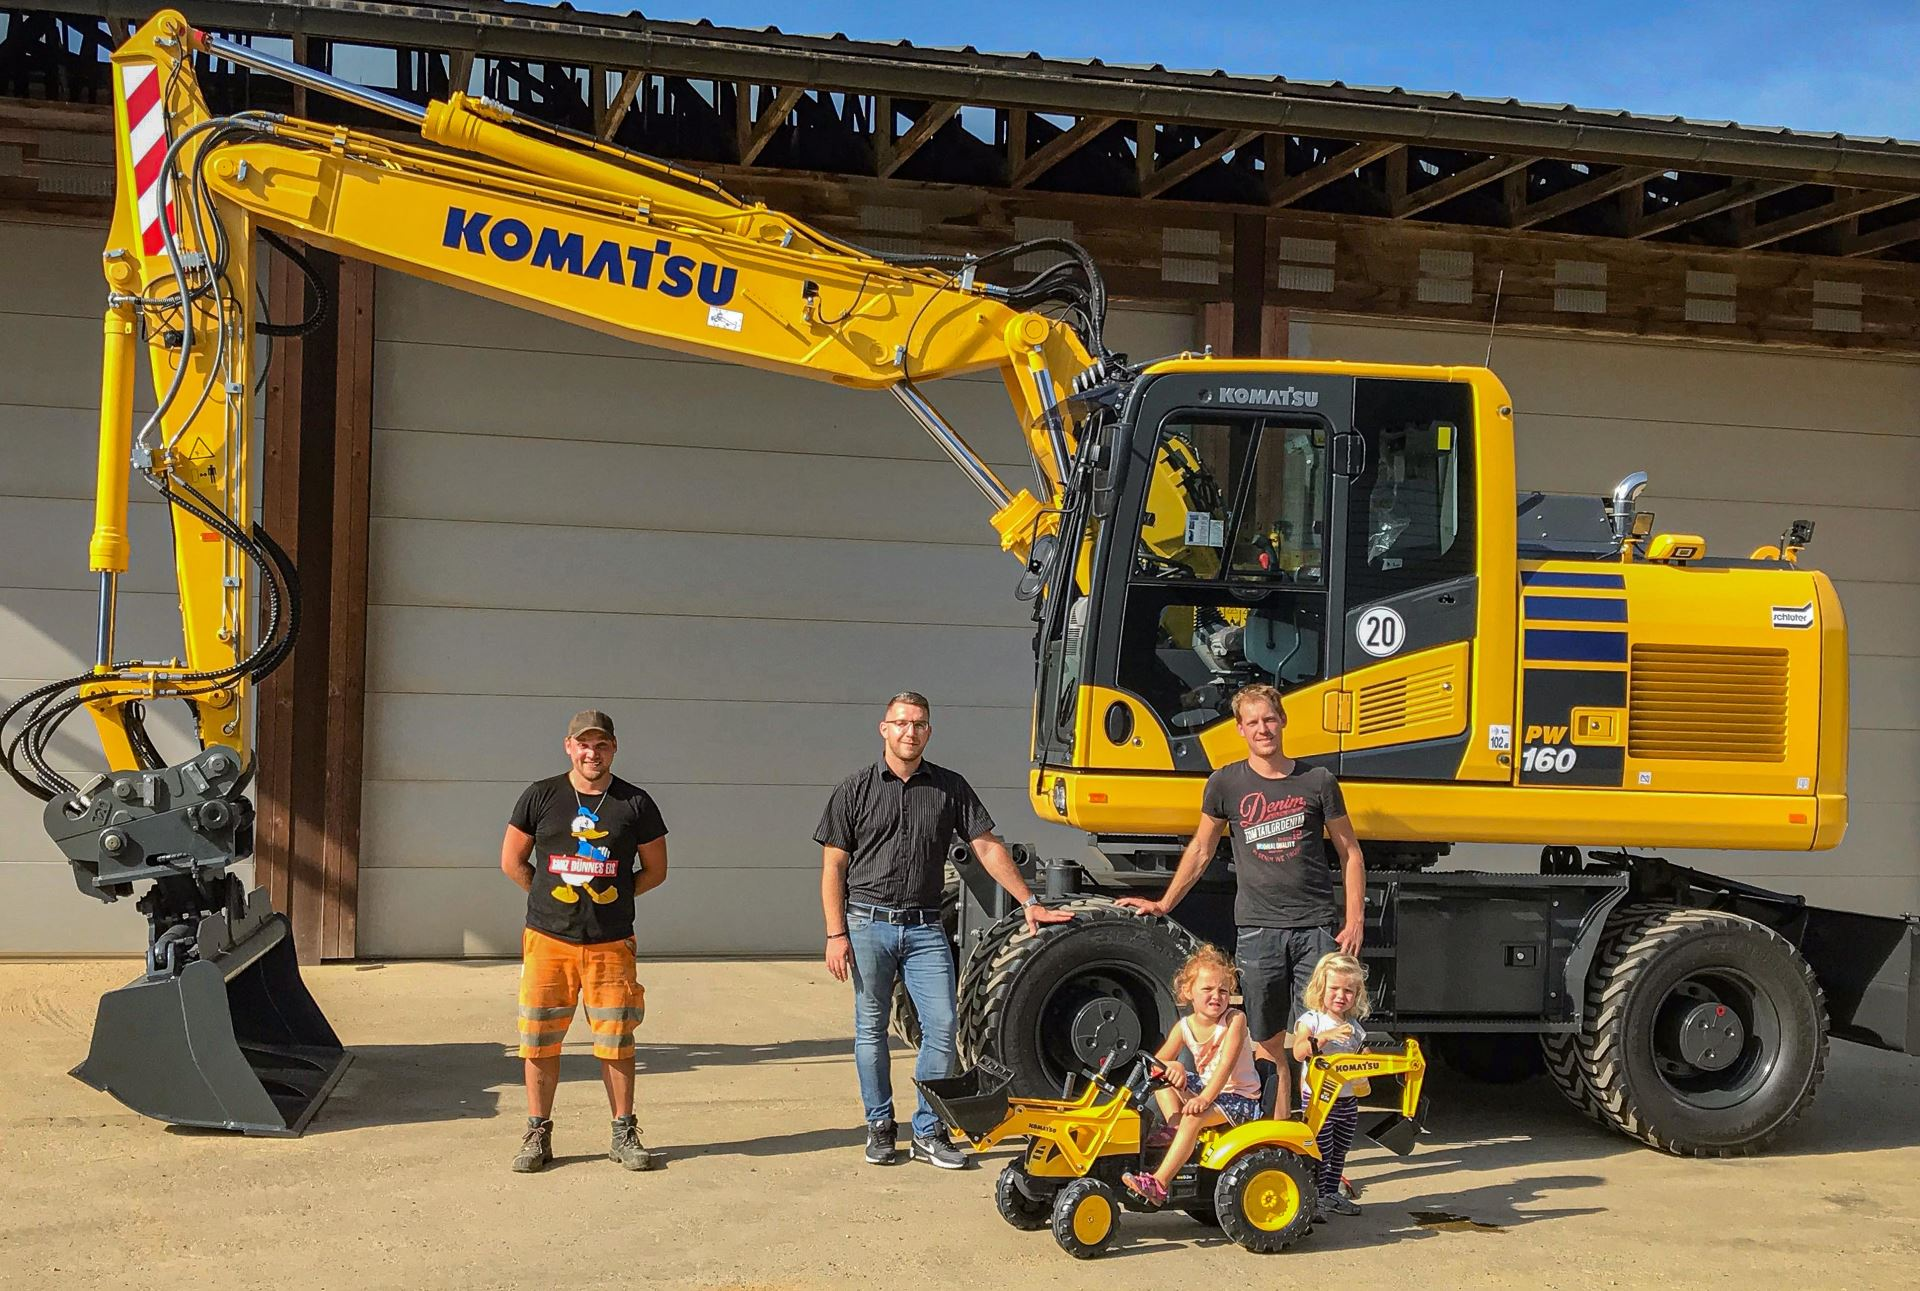 Schlüter for construction equipment supplies two generations with new construction equipment  - 0